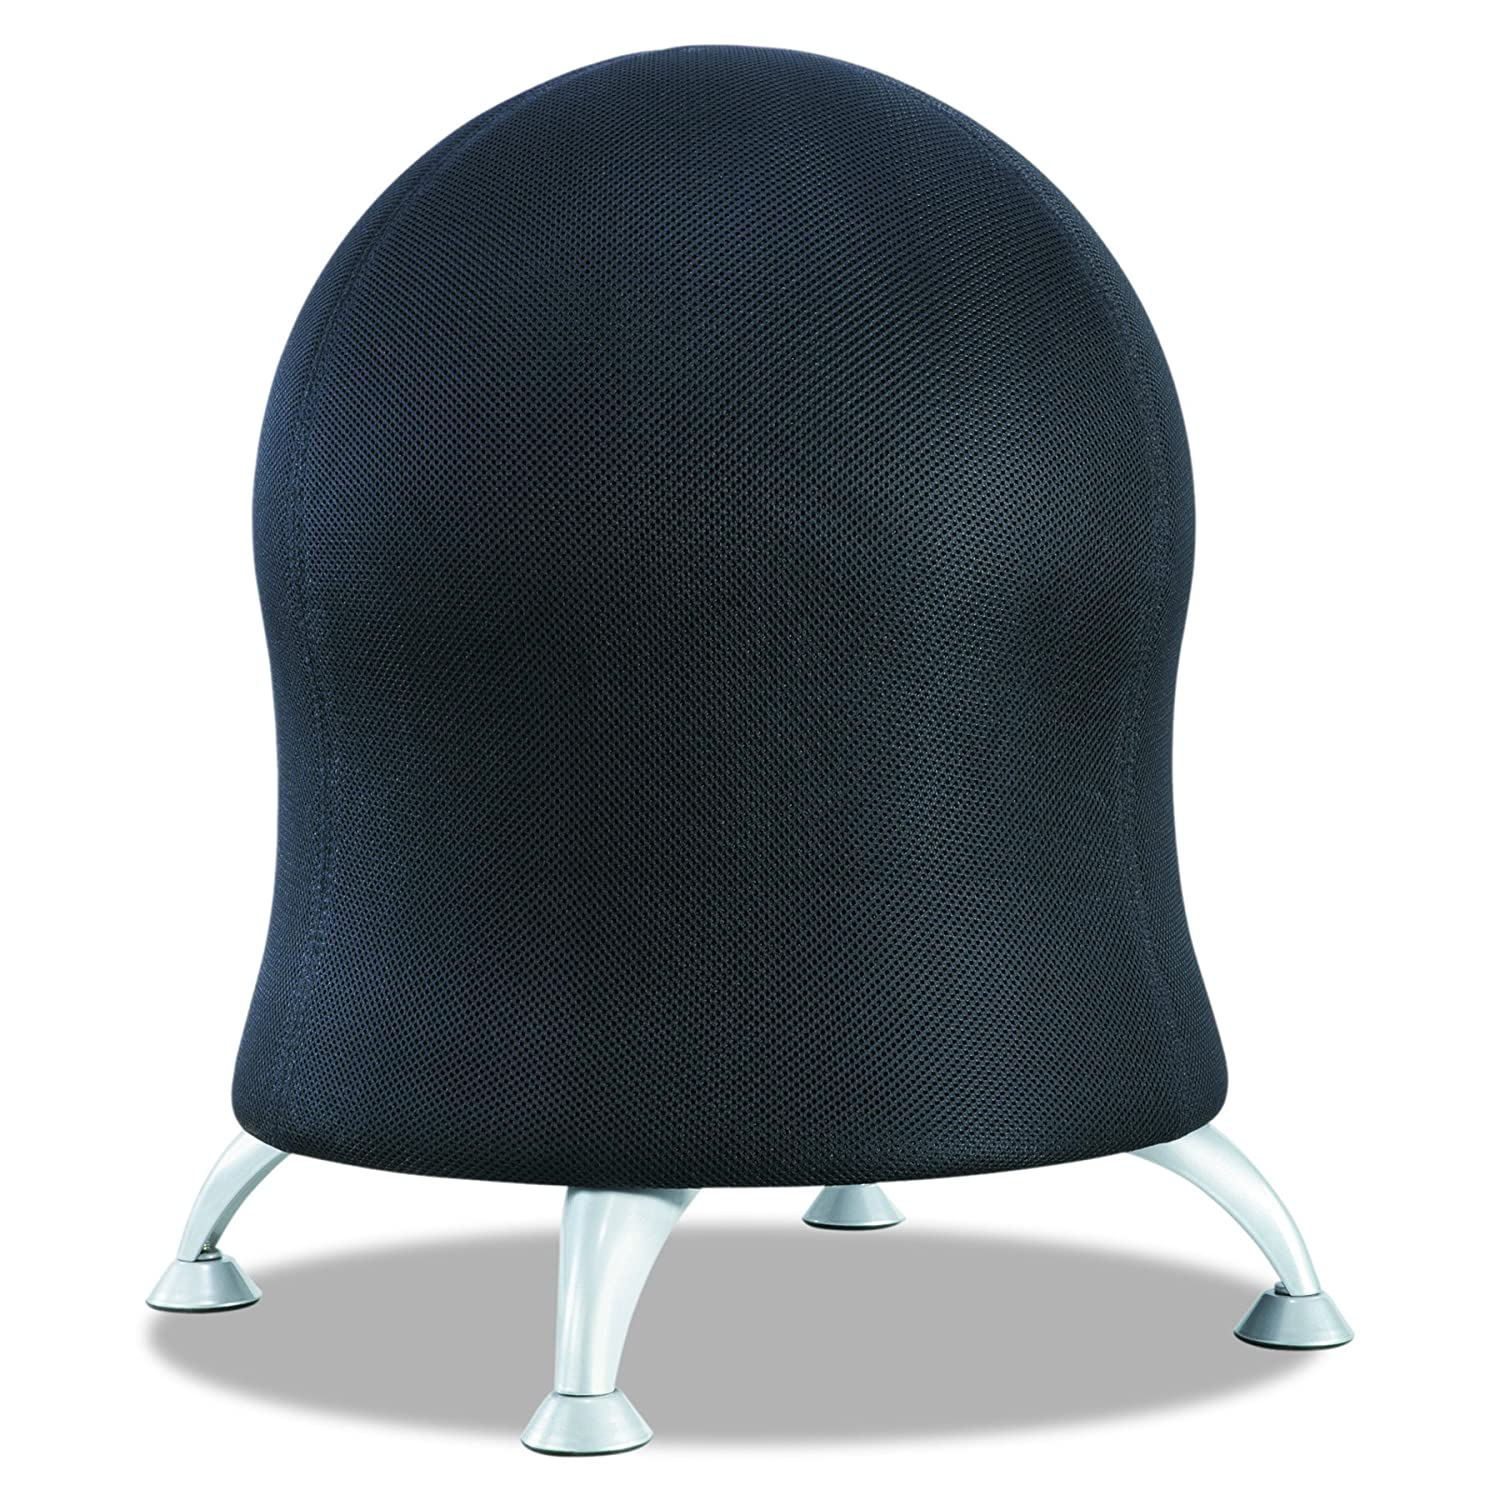 Safco Products Zenergy Ball Chair 4750BL, Black, Low Profile, Active Seating, Steel Legs